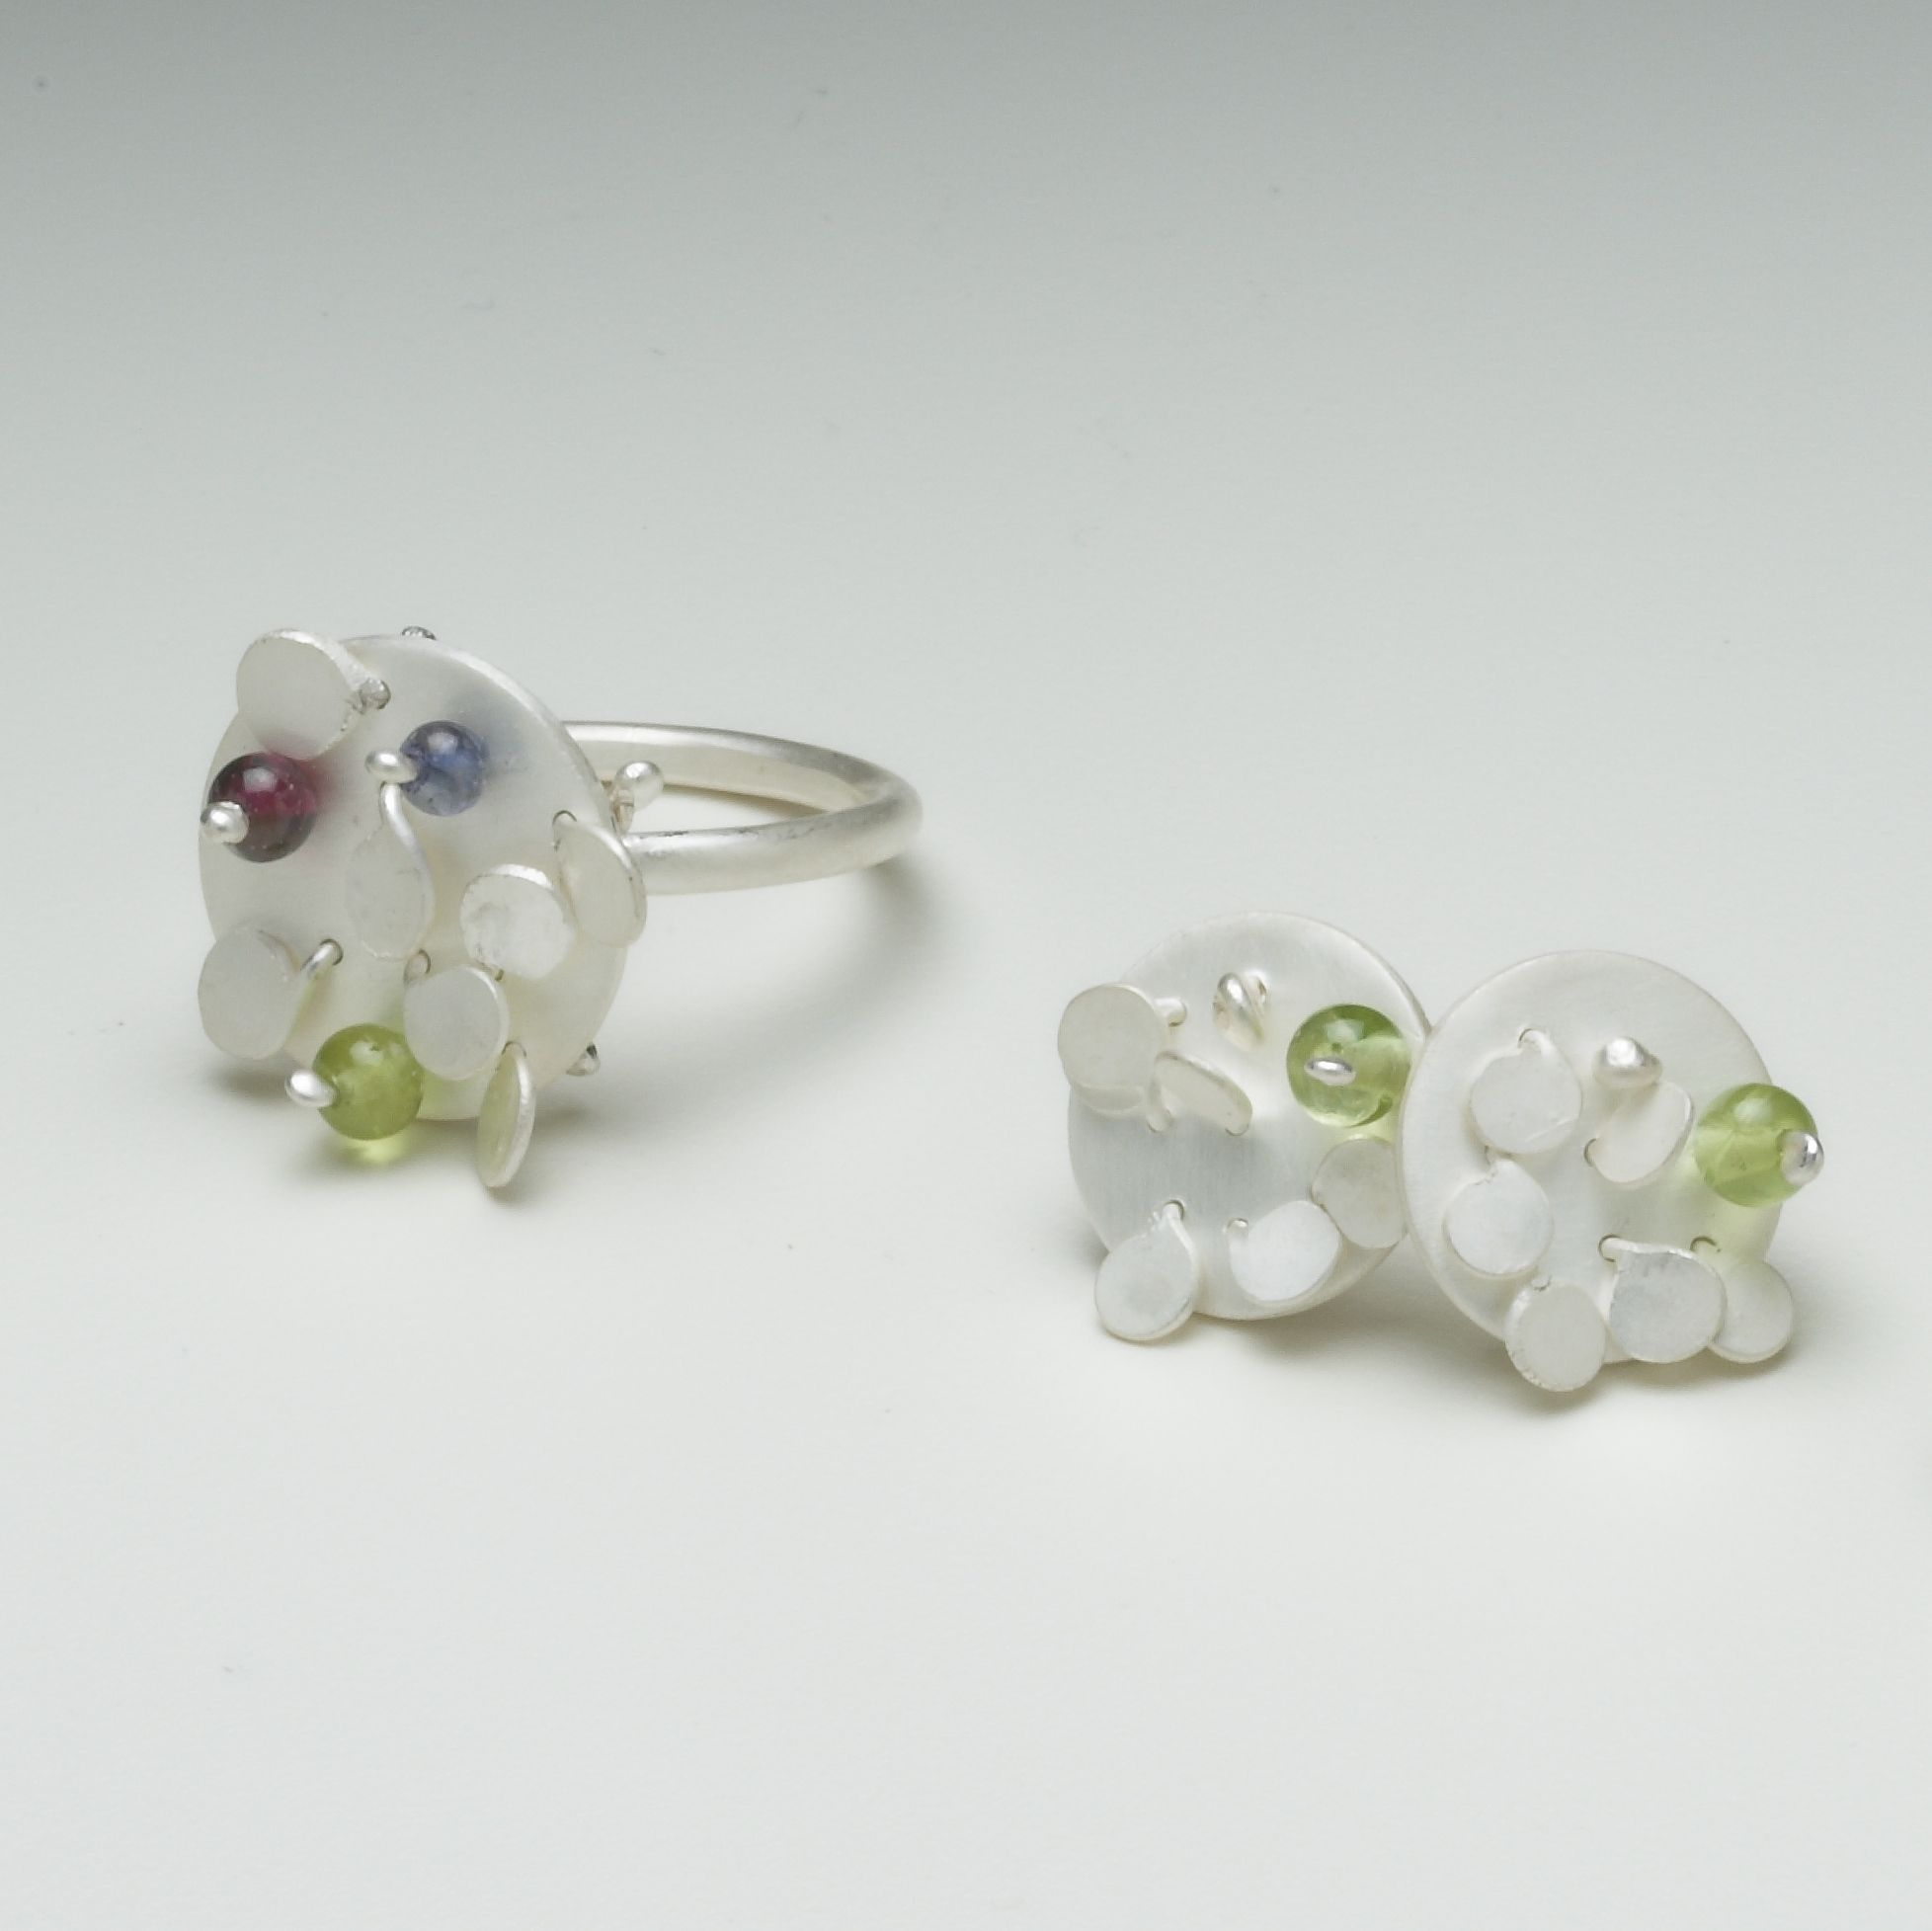 Symphony Bloom Disc Ring And Stud Earrings Round Silver White Satin Peridot Iolite Garnet Green